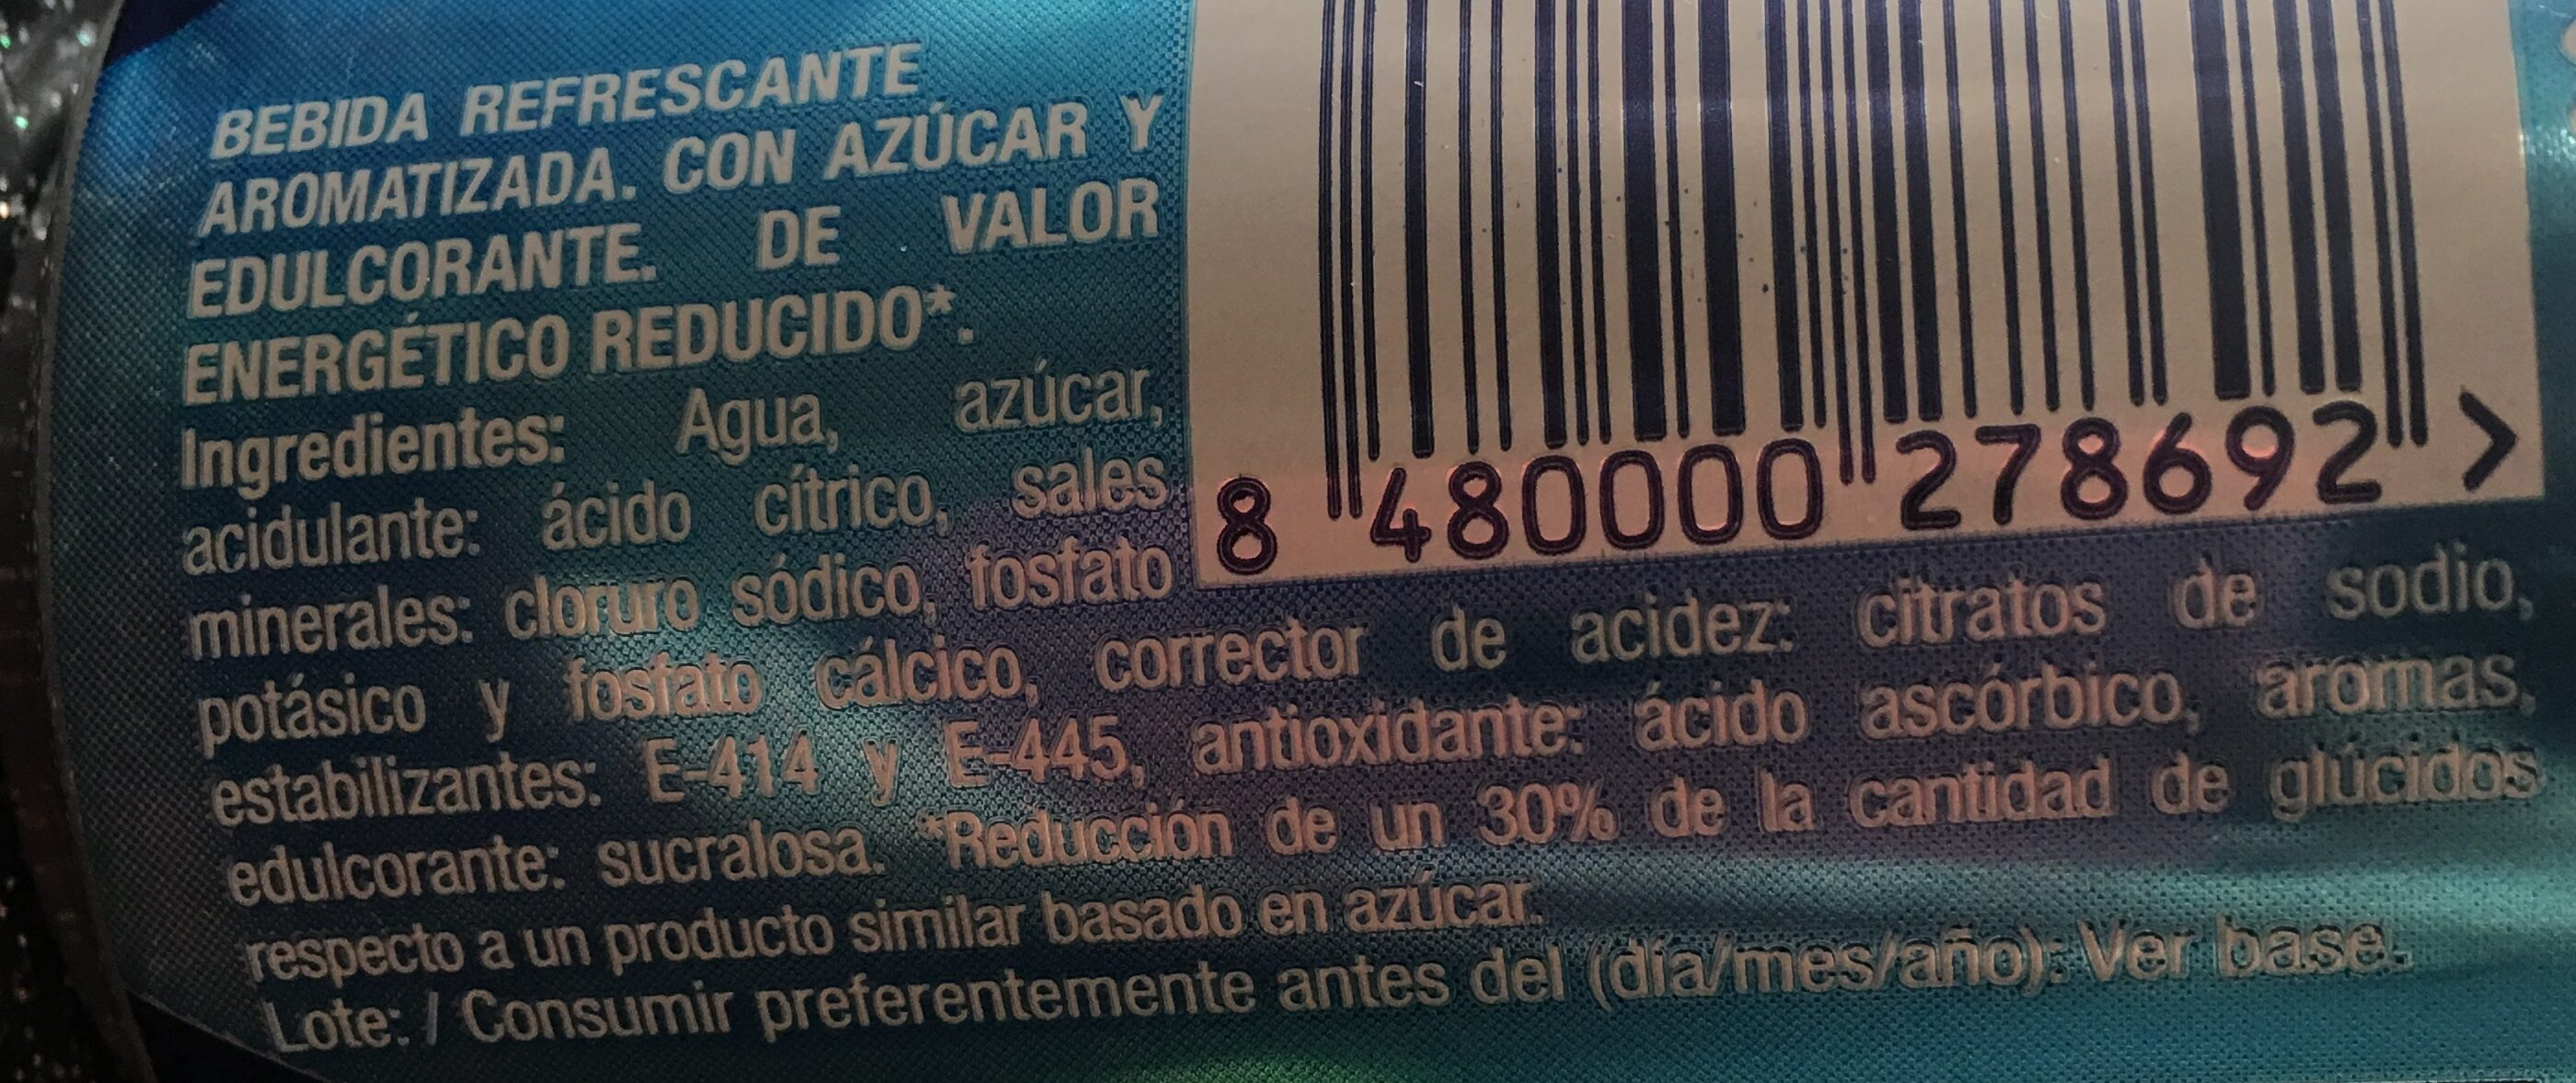 Bebida para deportistas sabor cítrico - Ingredients - es